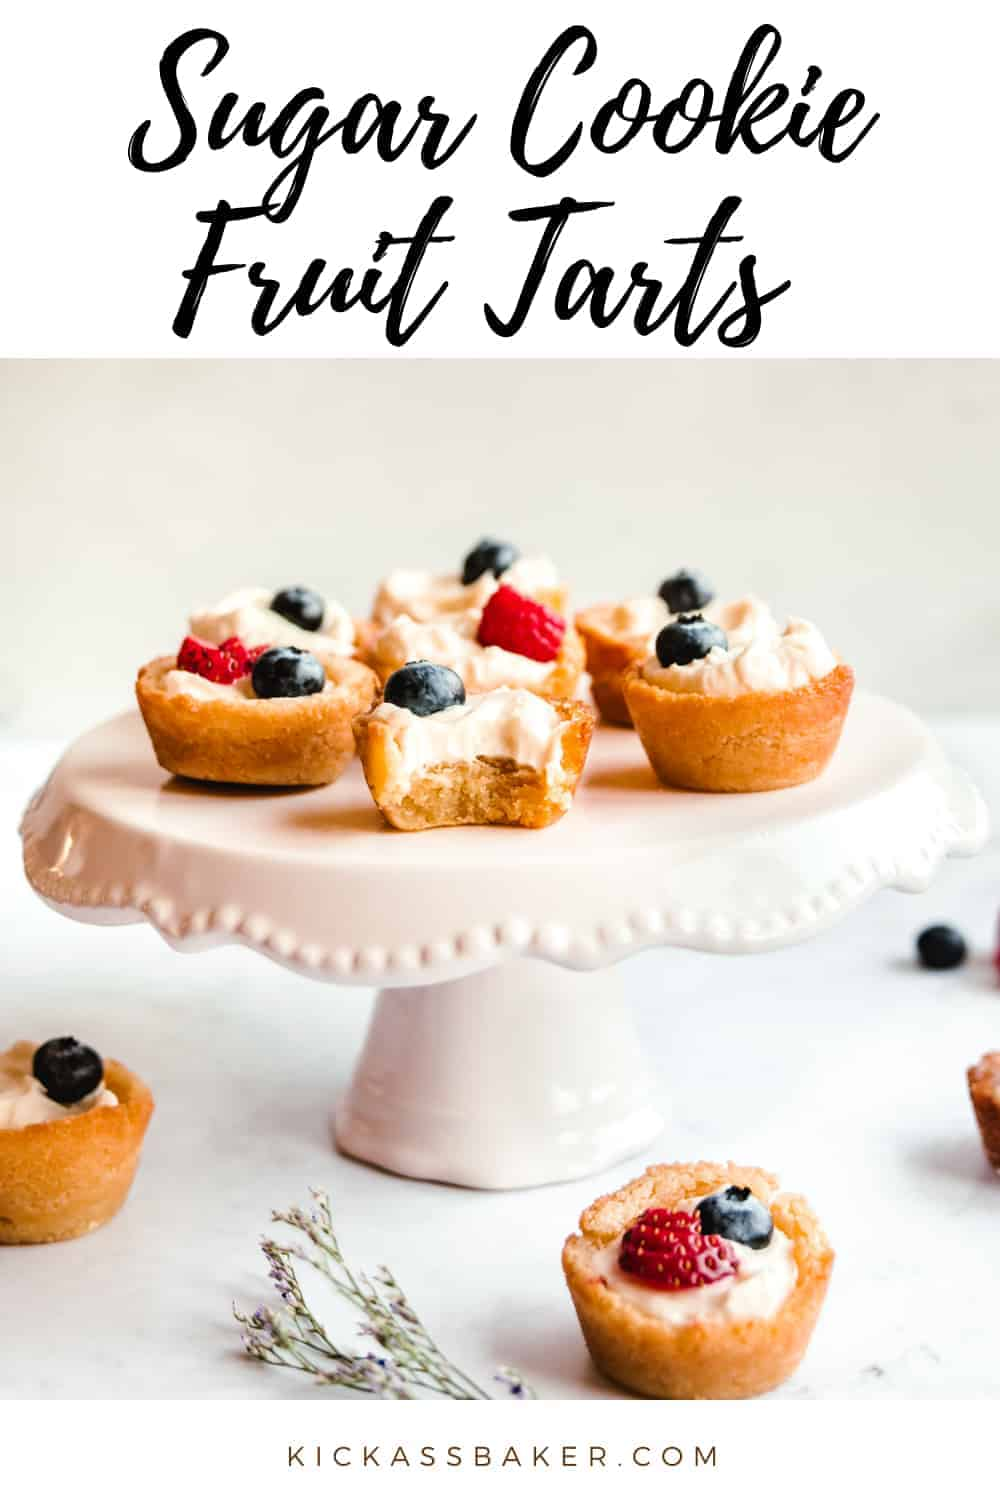 Sugar Cookie Fruit Tarts   kickassbaker.com pin for pinterest with text overlay